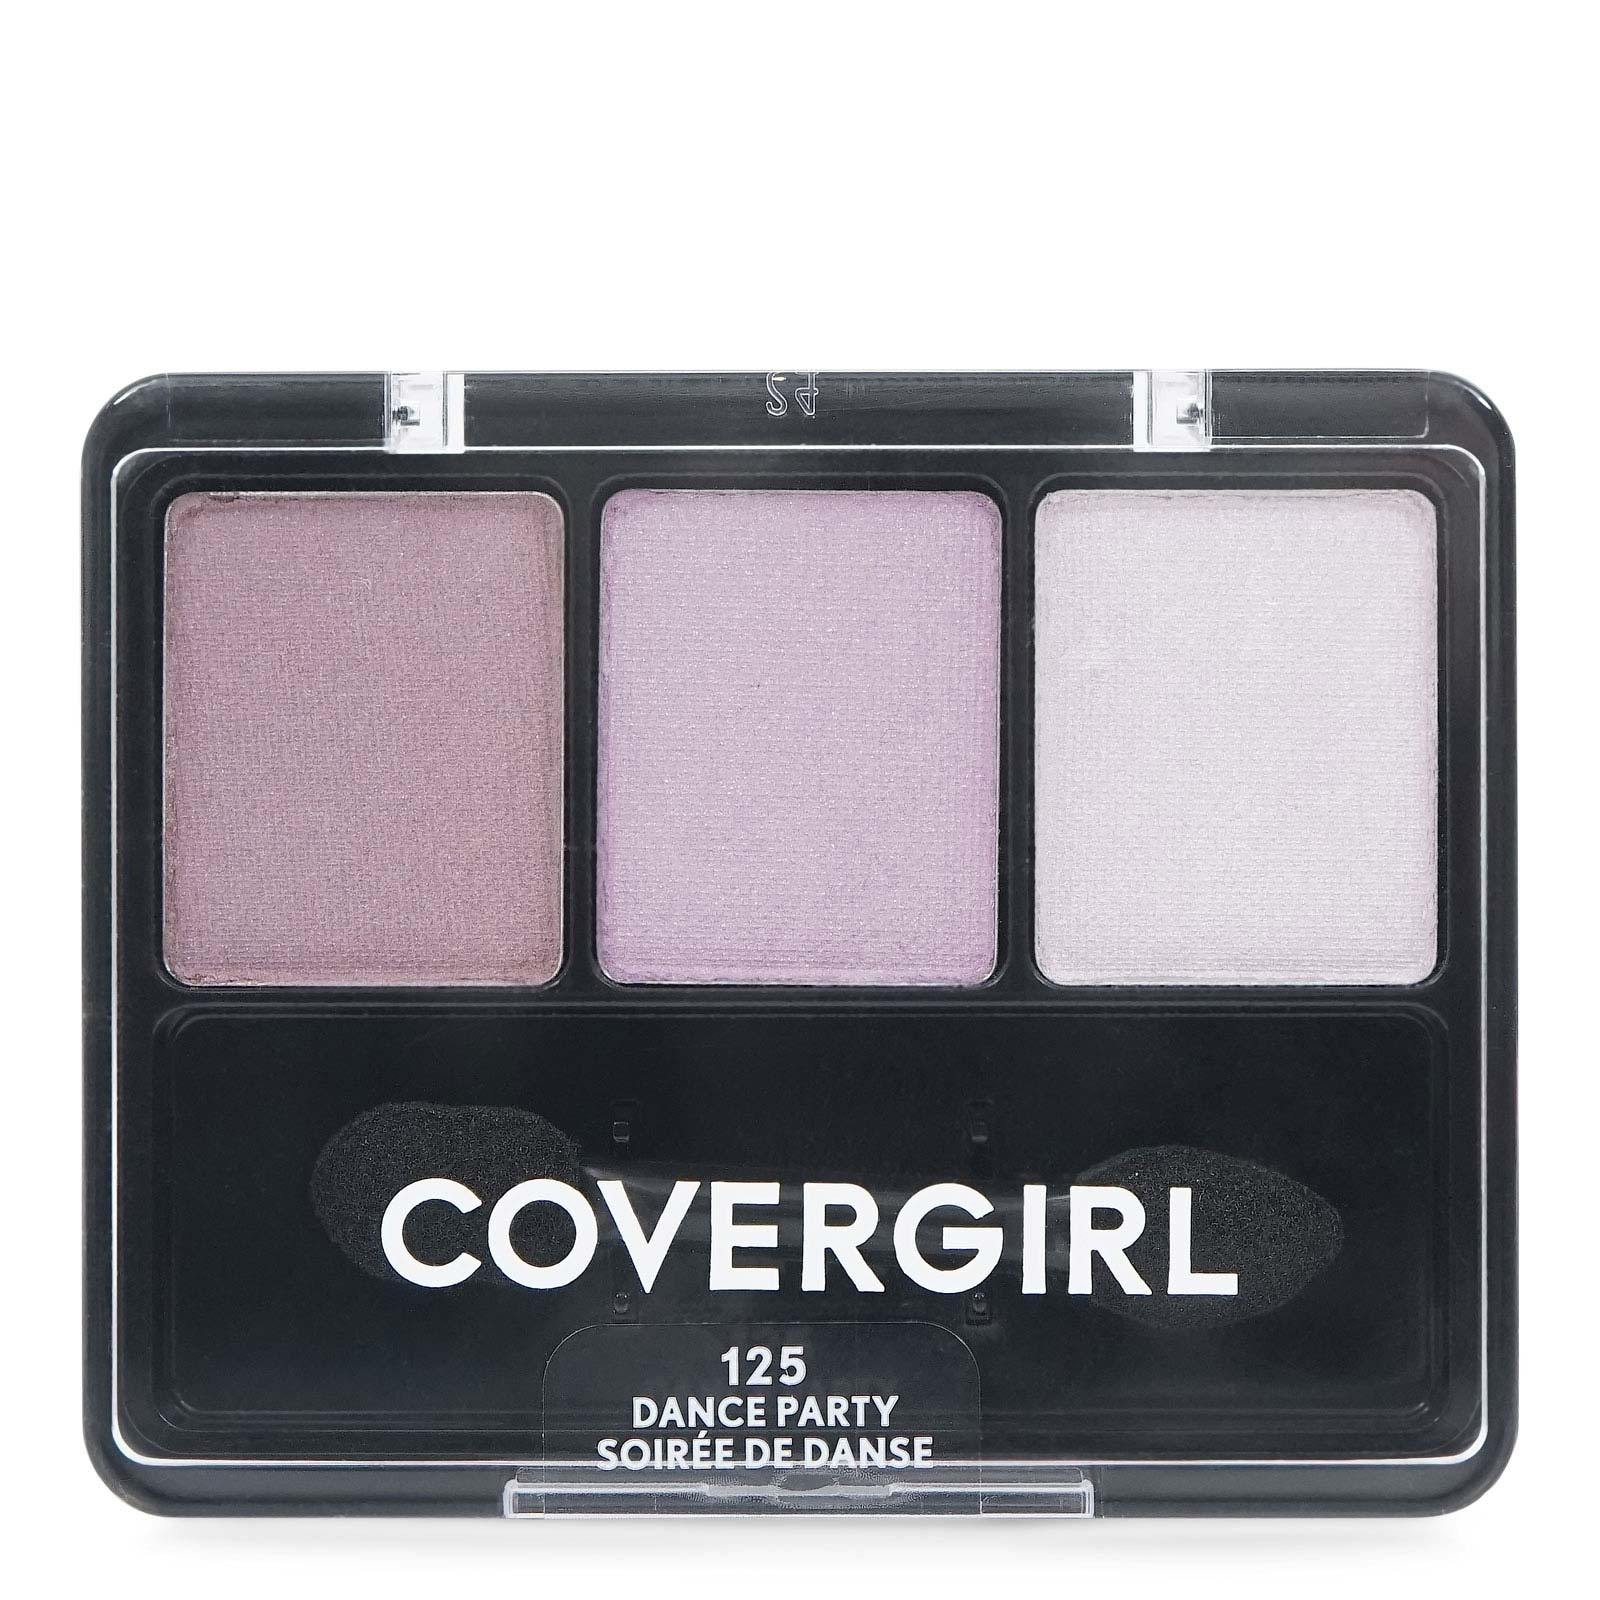 COVERGIRL TRIO EYESHADOW - DANCE PARTY (24/cs)